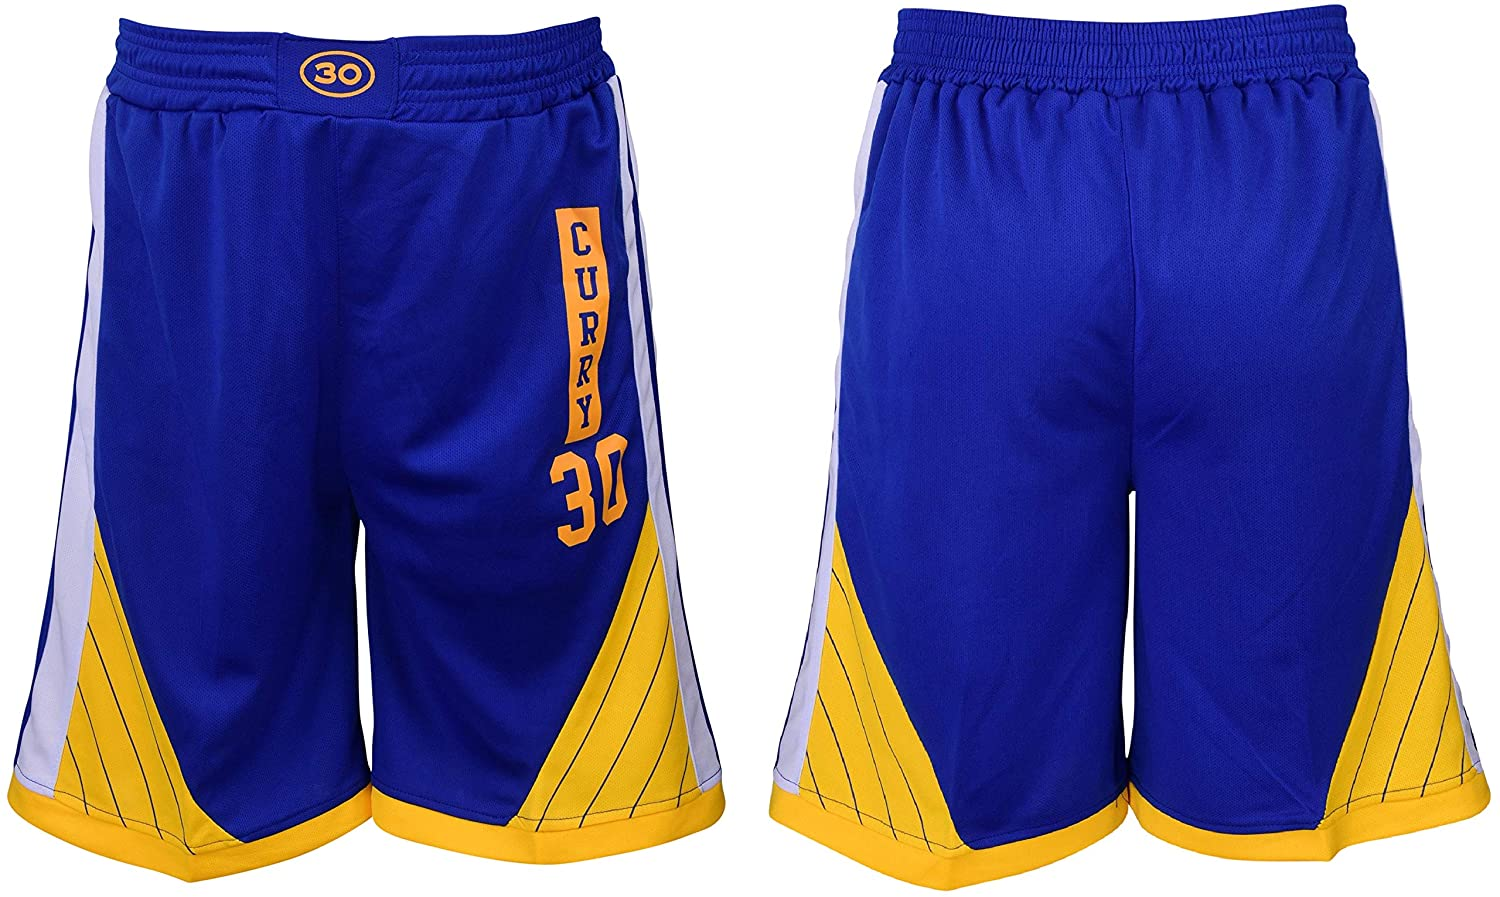 bf6b427a0fa8 Amazon.com   Icer Brands Steph Curry Basketball Shorts Blue Kids Youth  Sizes Premium Quality   Sports   Outdoors